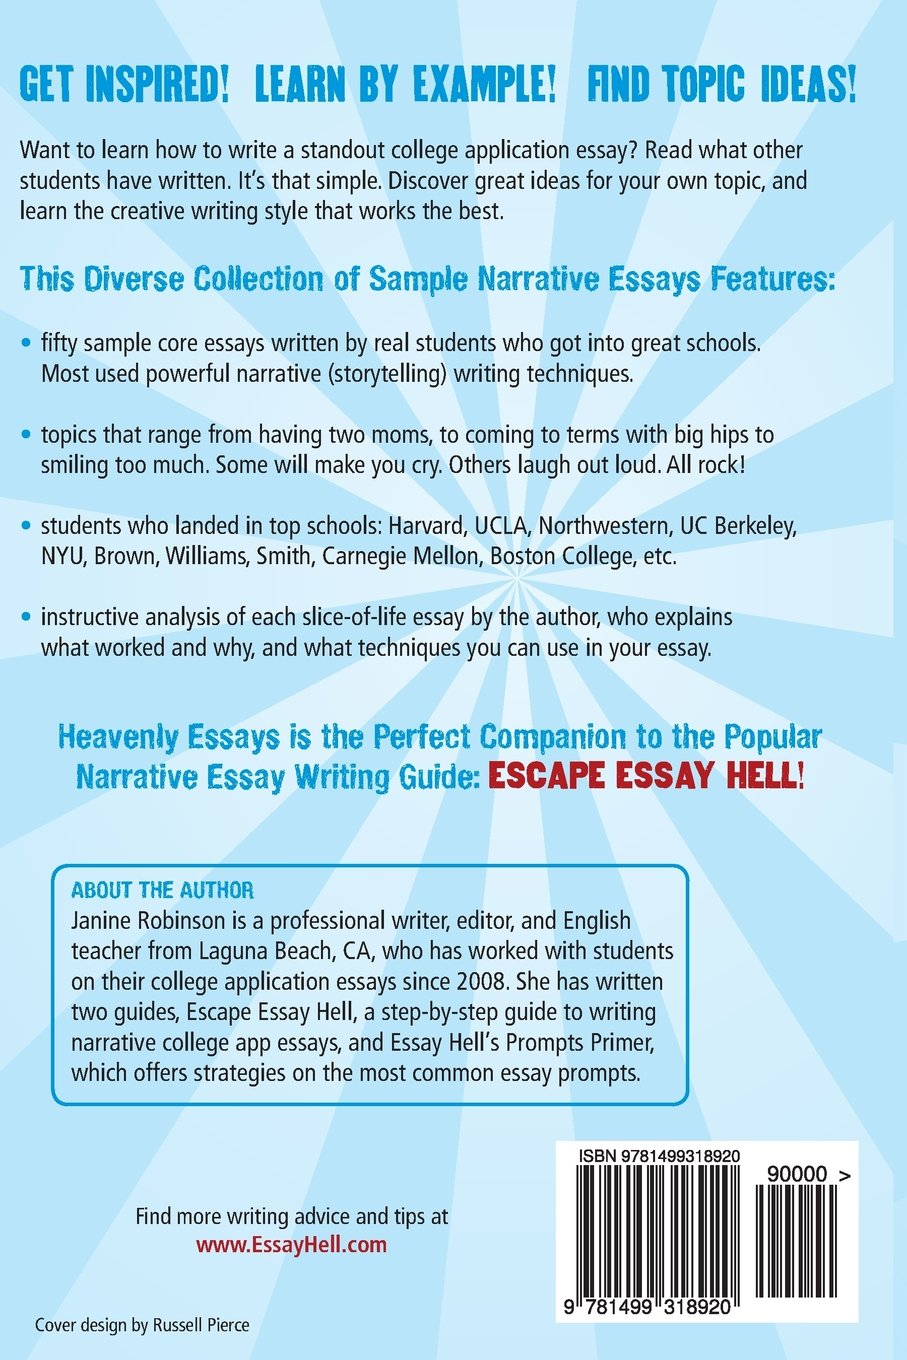 heavenly essays narrative college application essays that heavenly essays 50 narrative college application essays that worked janine w robinson 9781499318920 com books